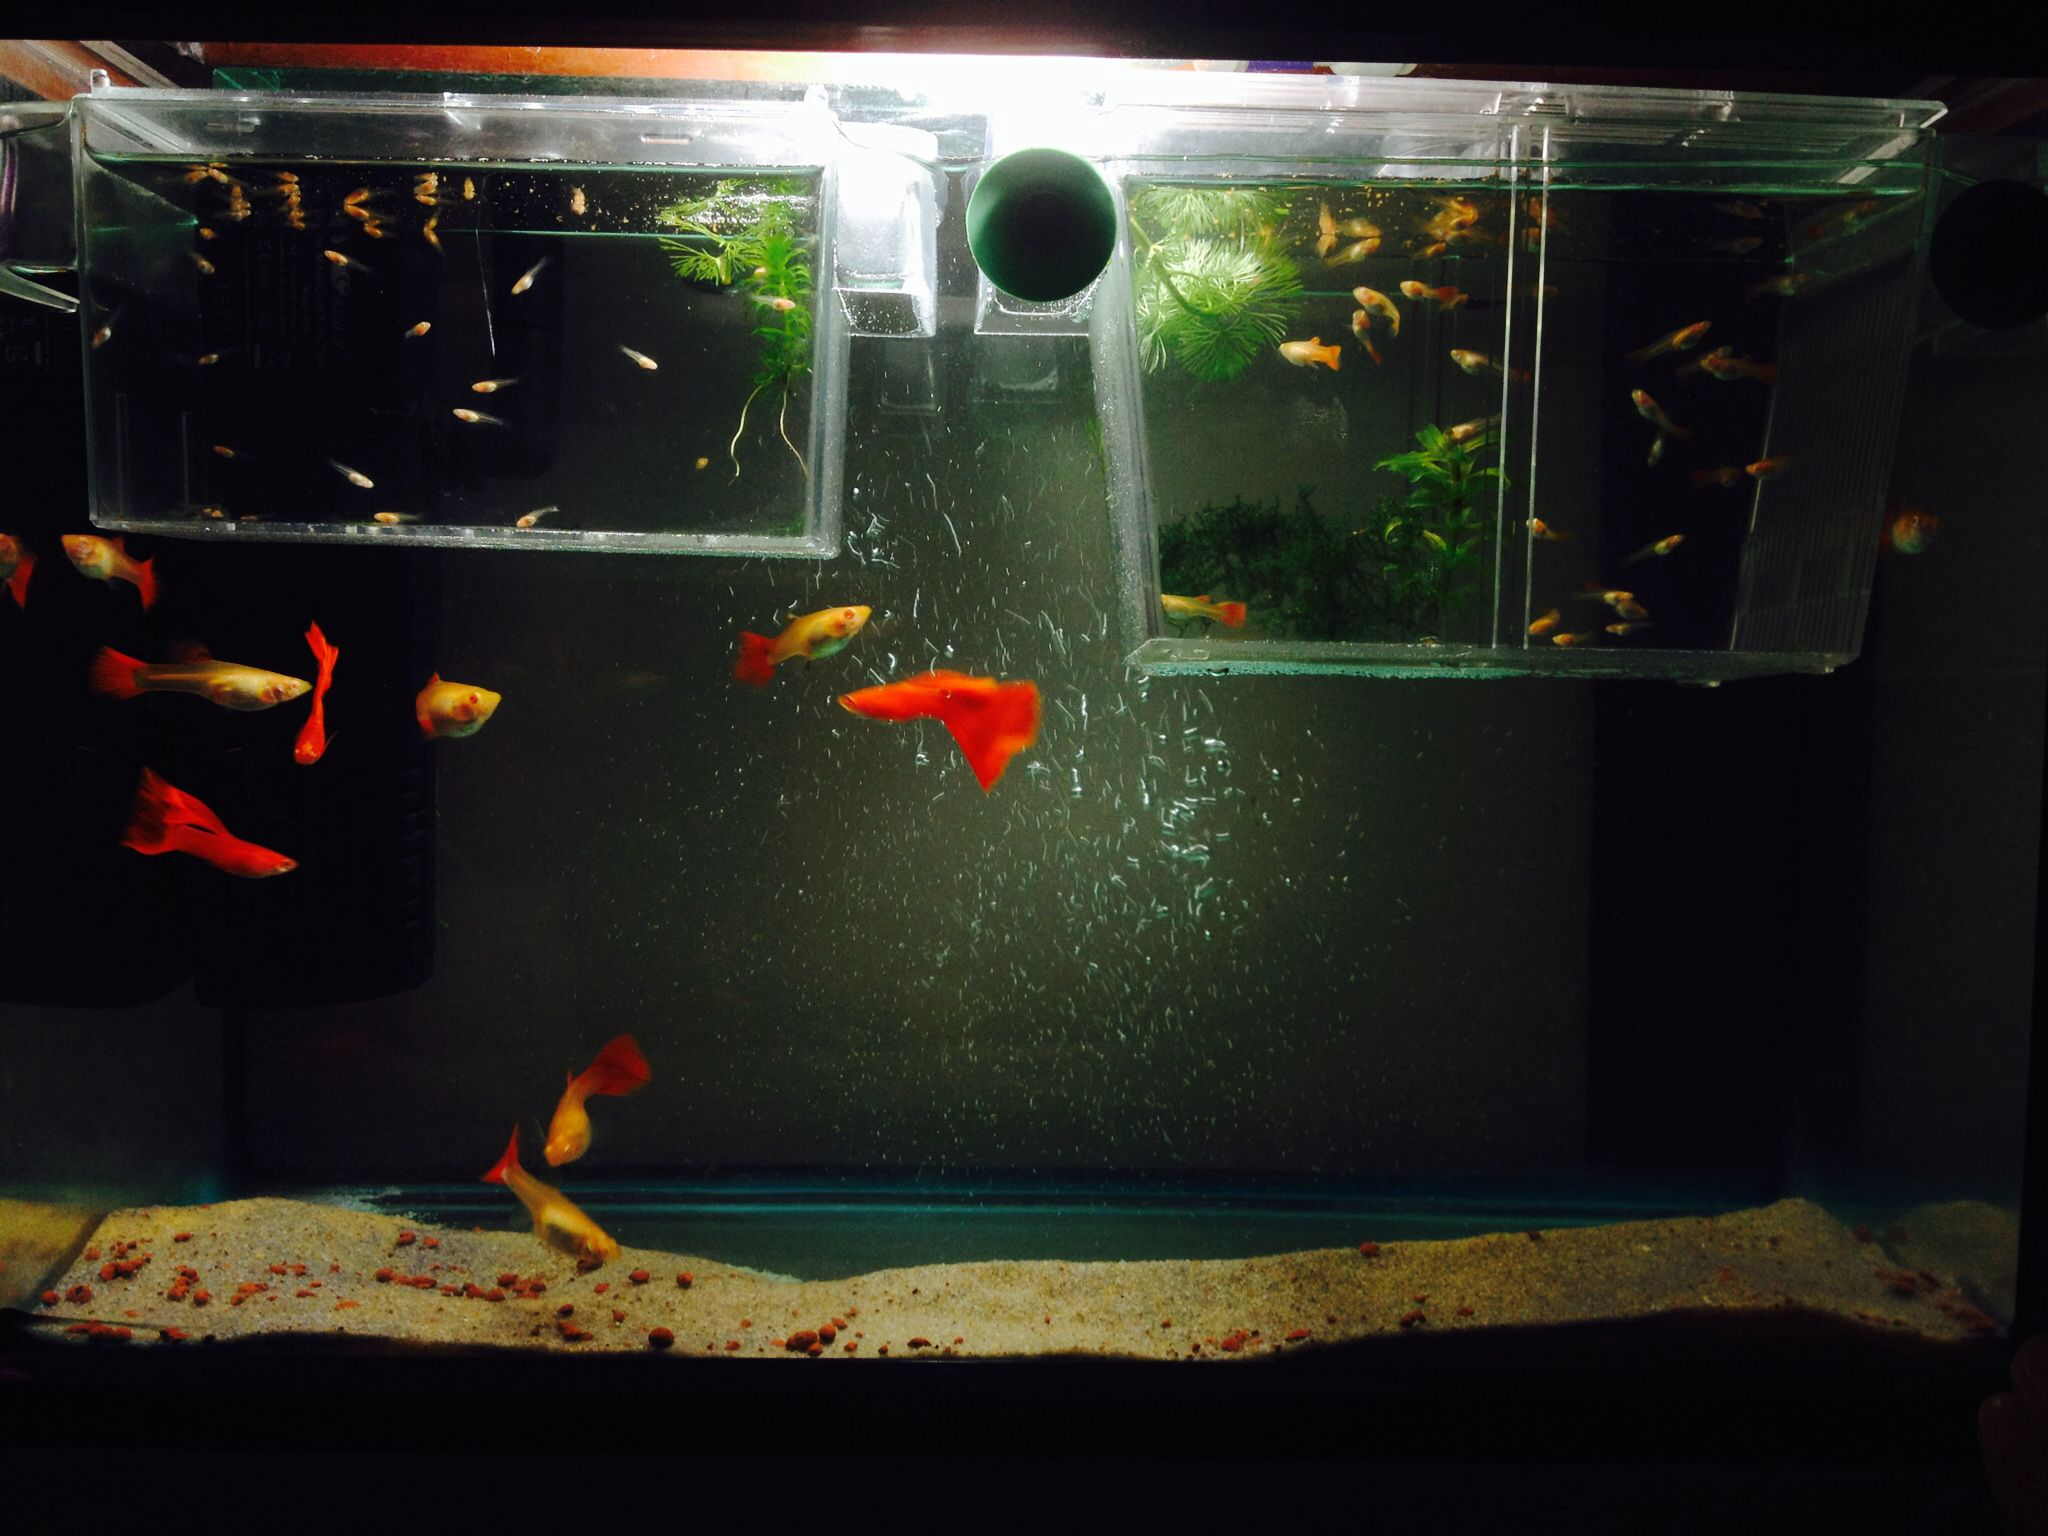 Guppy Fish Tank With Adults And Babies Oh How I Wish I Could Have Guppies Again Fish Tank Aquarium Fish Tropical Fish